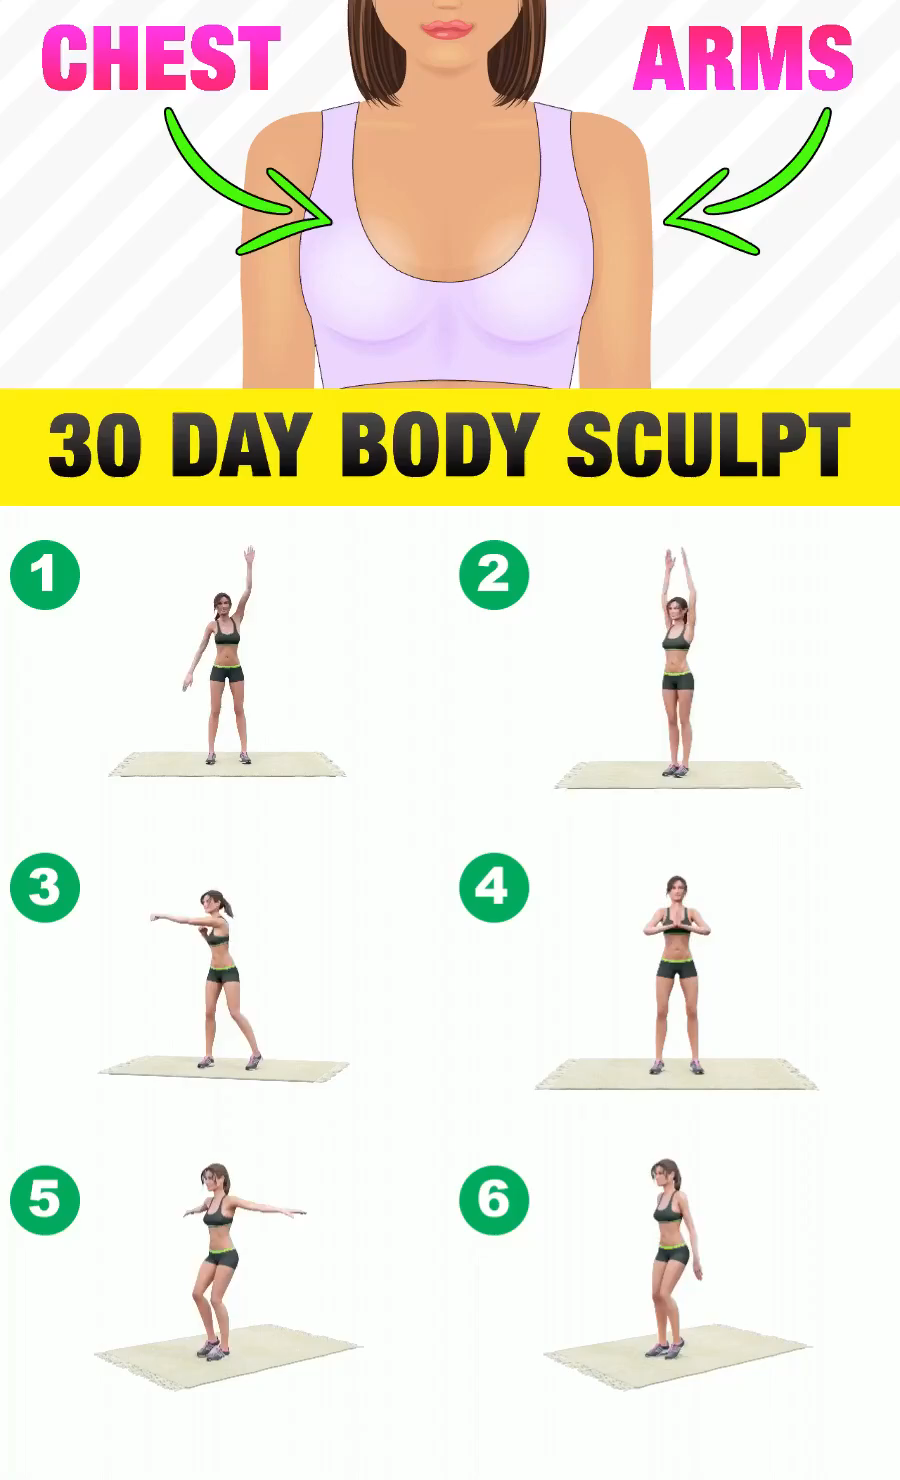 30 Day Body Sculpt Video Workout Videos Gym Workout For Beginners Arm Workout